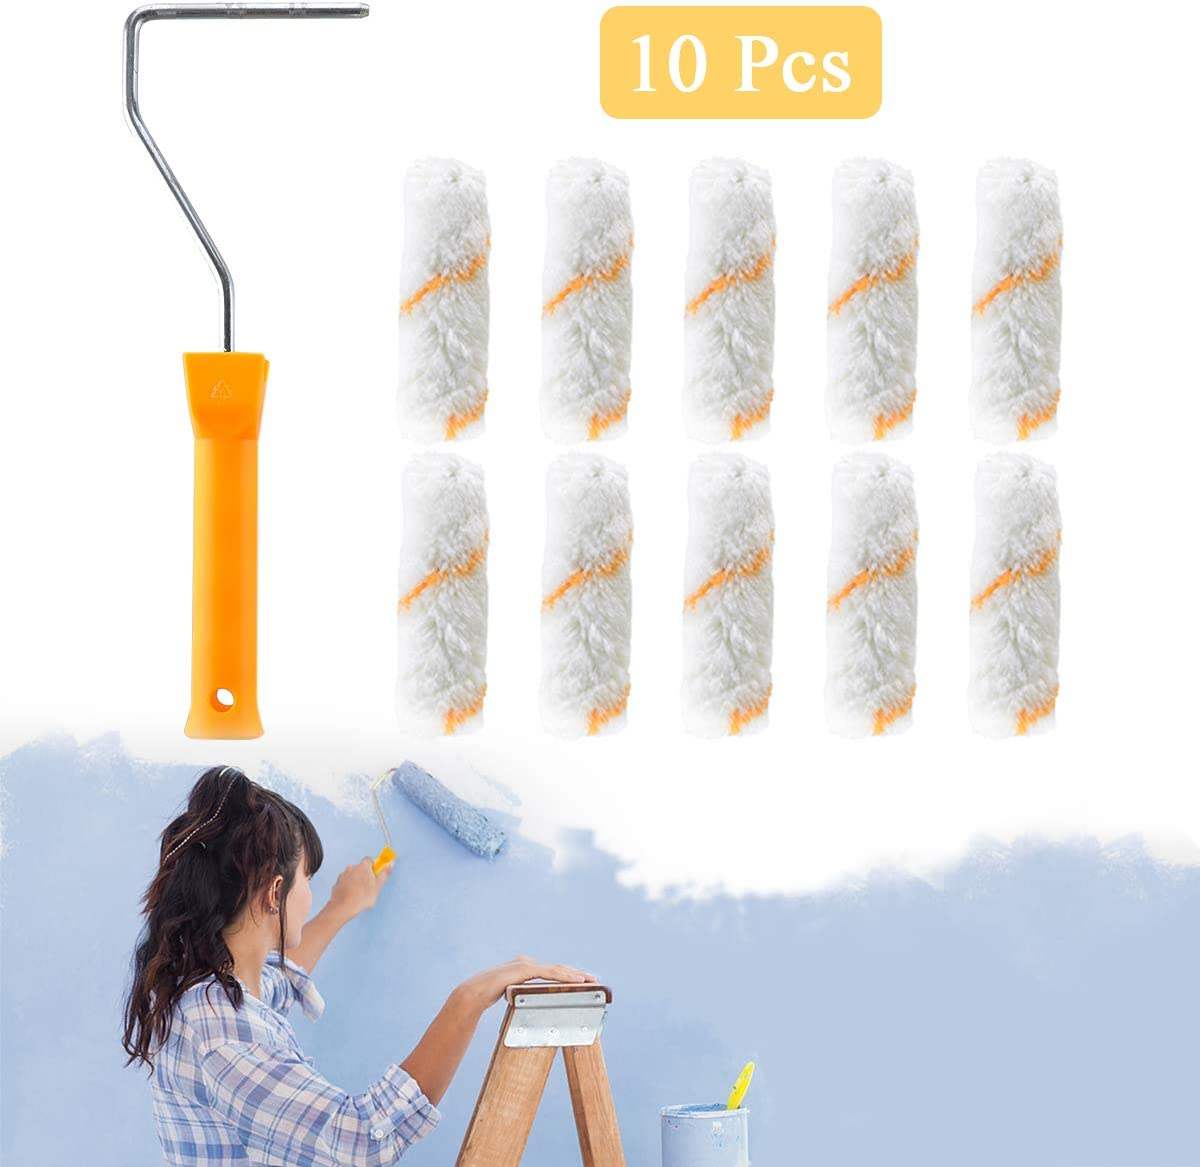 Wall Paint Brushes Essort Wall Paint Roller Corrosion Resistance Home Painting Brush 4 Mini Paint Roller with 10 Pcs Replacement Roller Covers House Decoration Painting Supplies